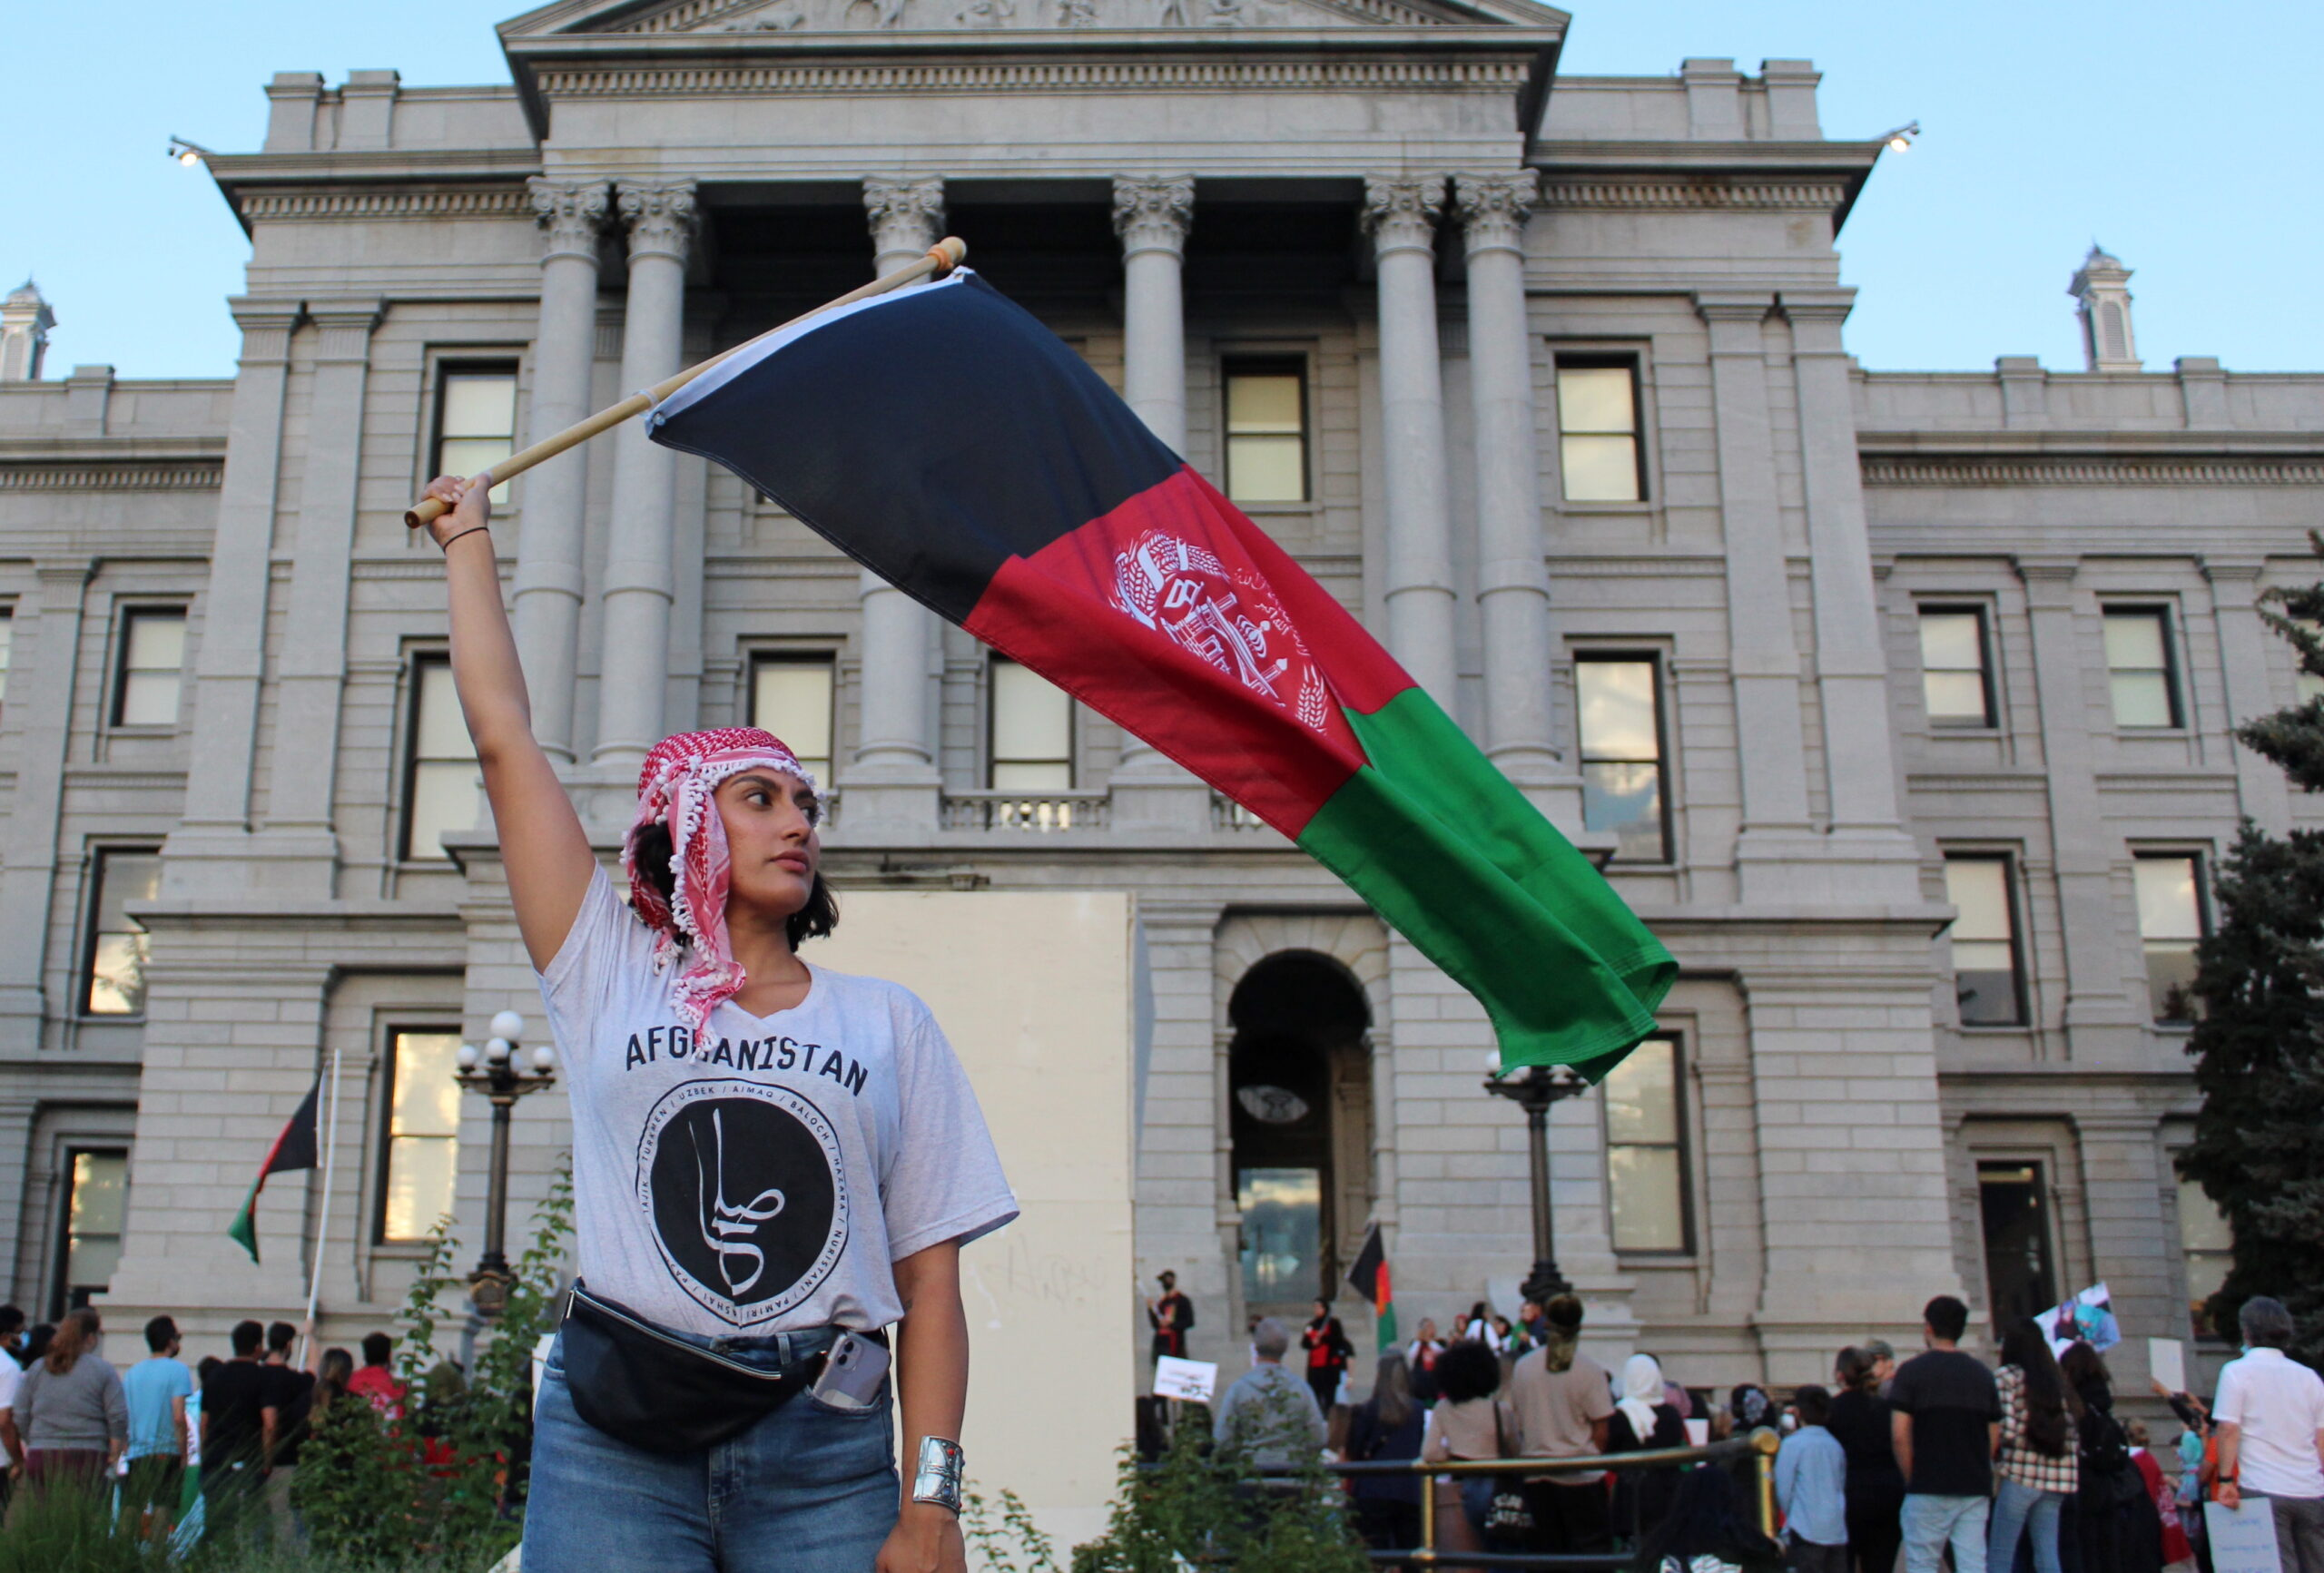 Afghan Americans rally in Denver for friends, family stuck in Afghanistan